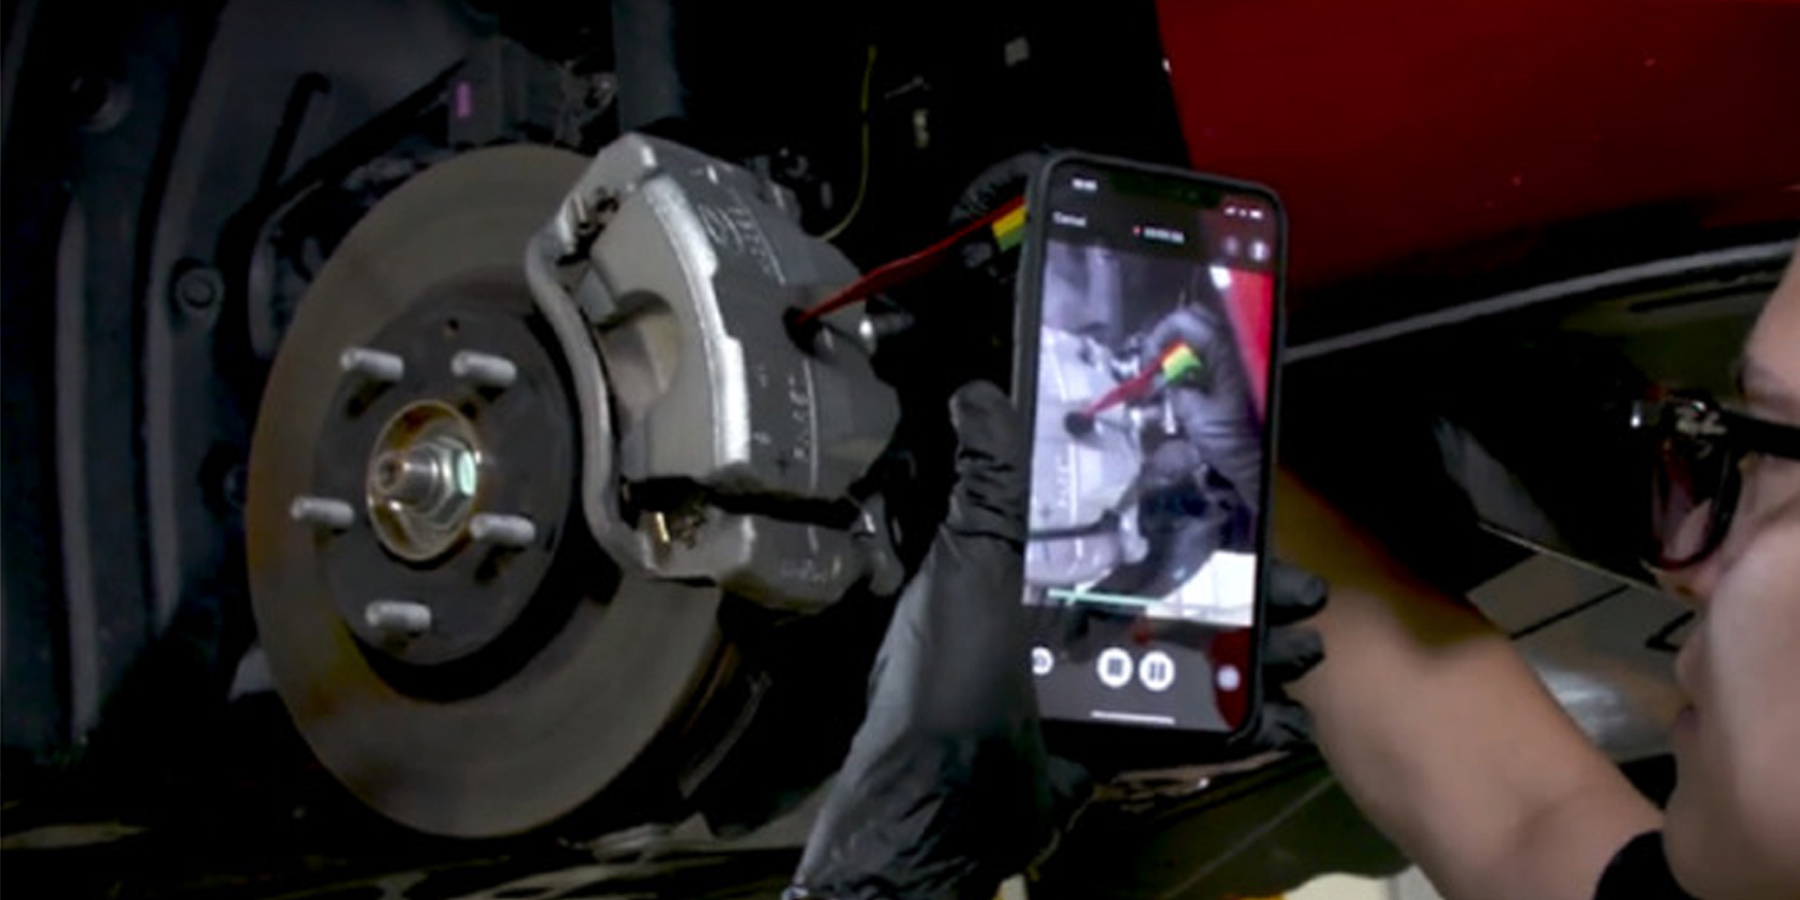 A man fixing his vehicle by following a video on his smart phone